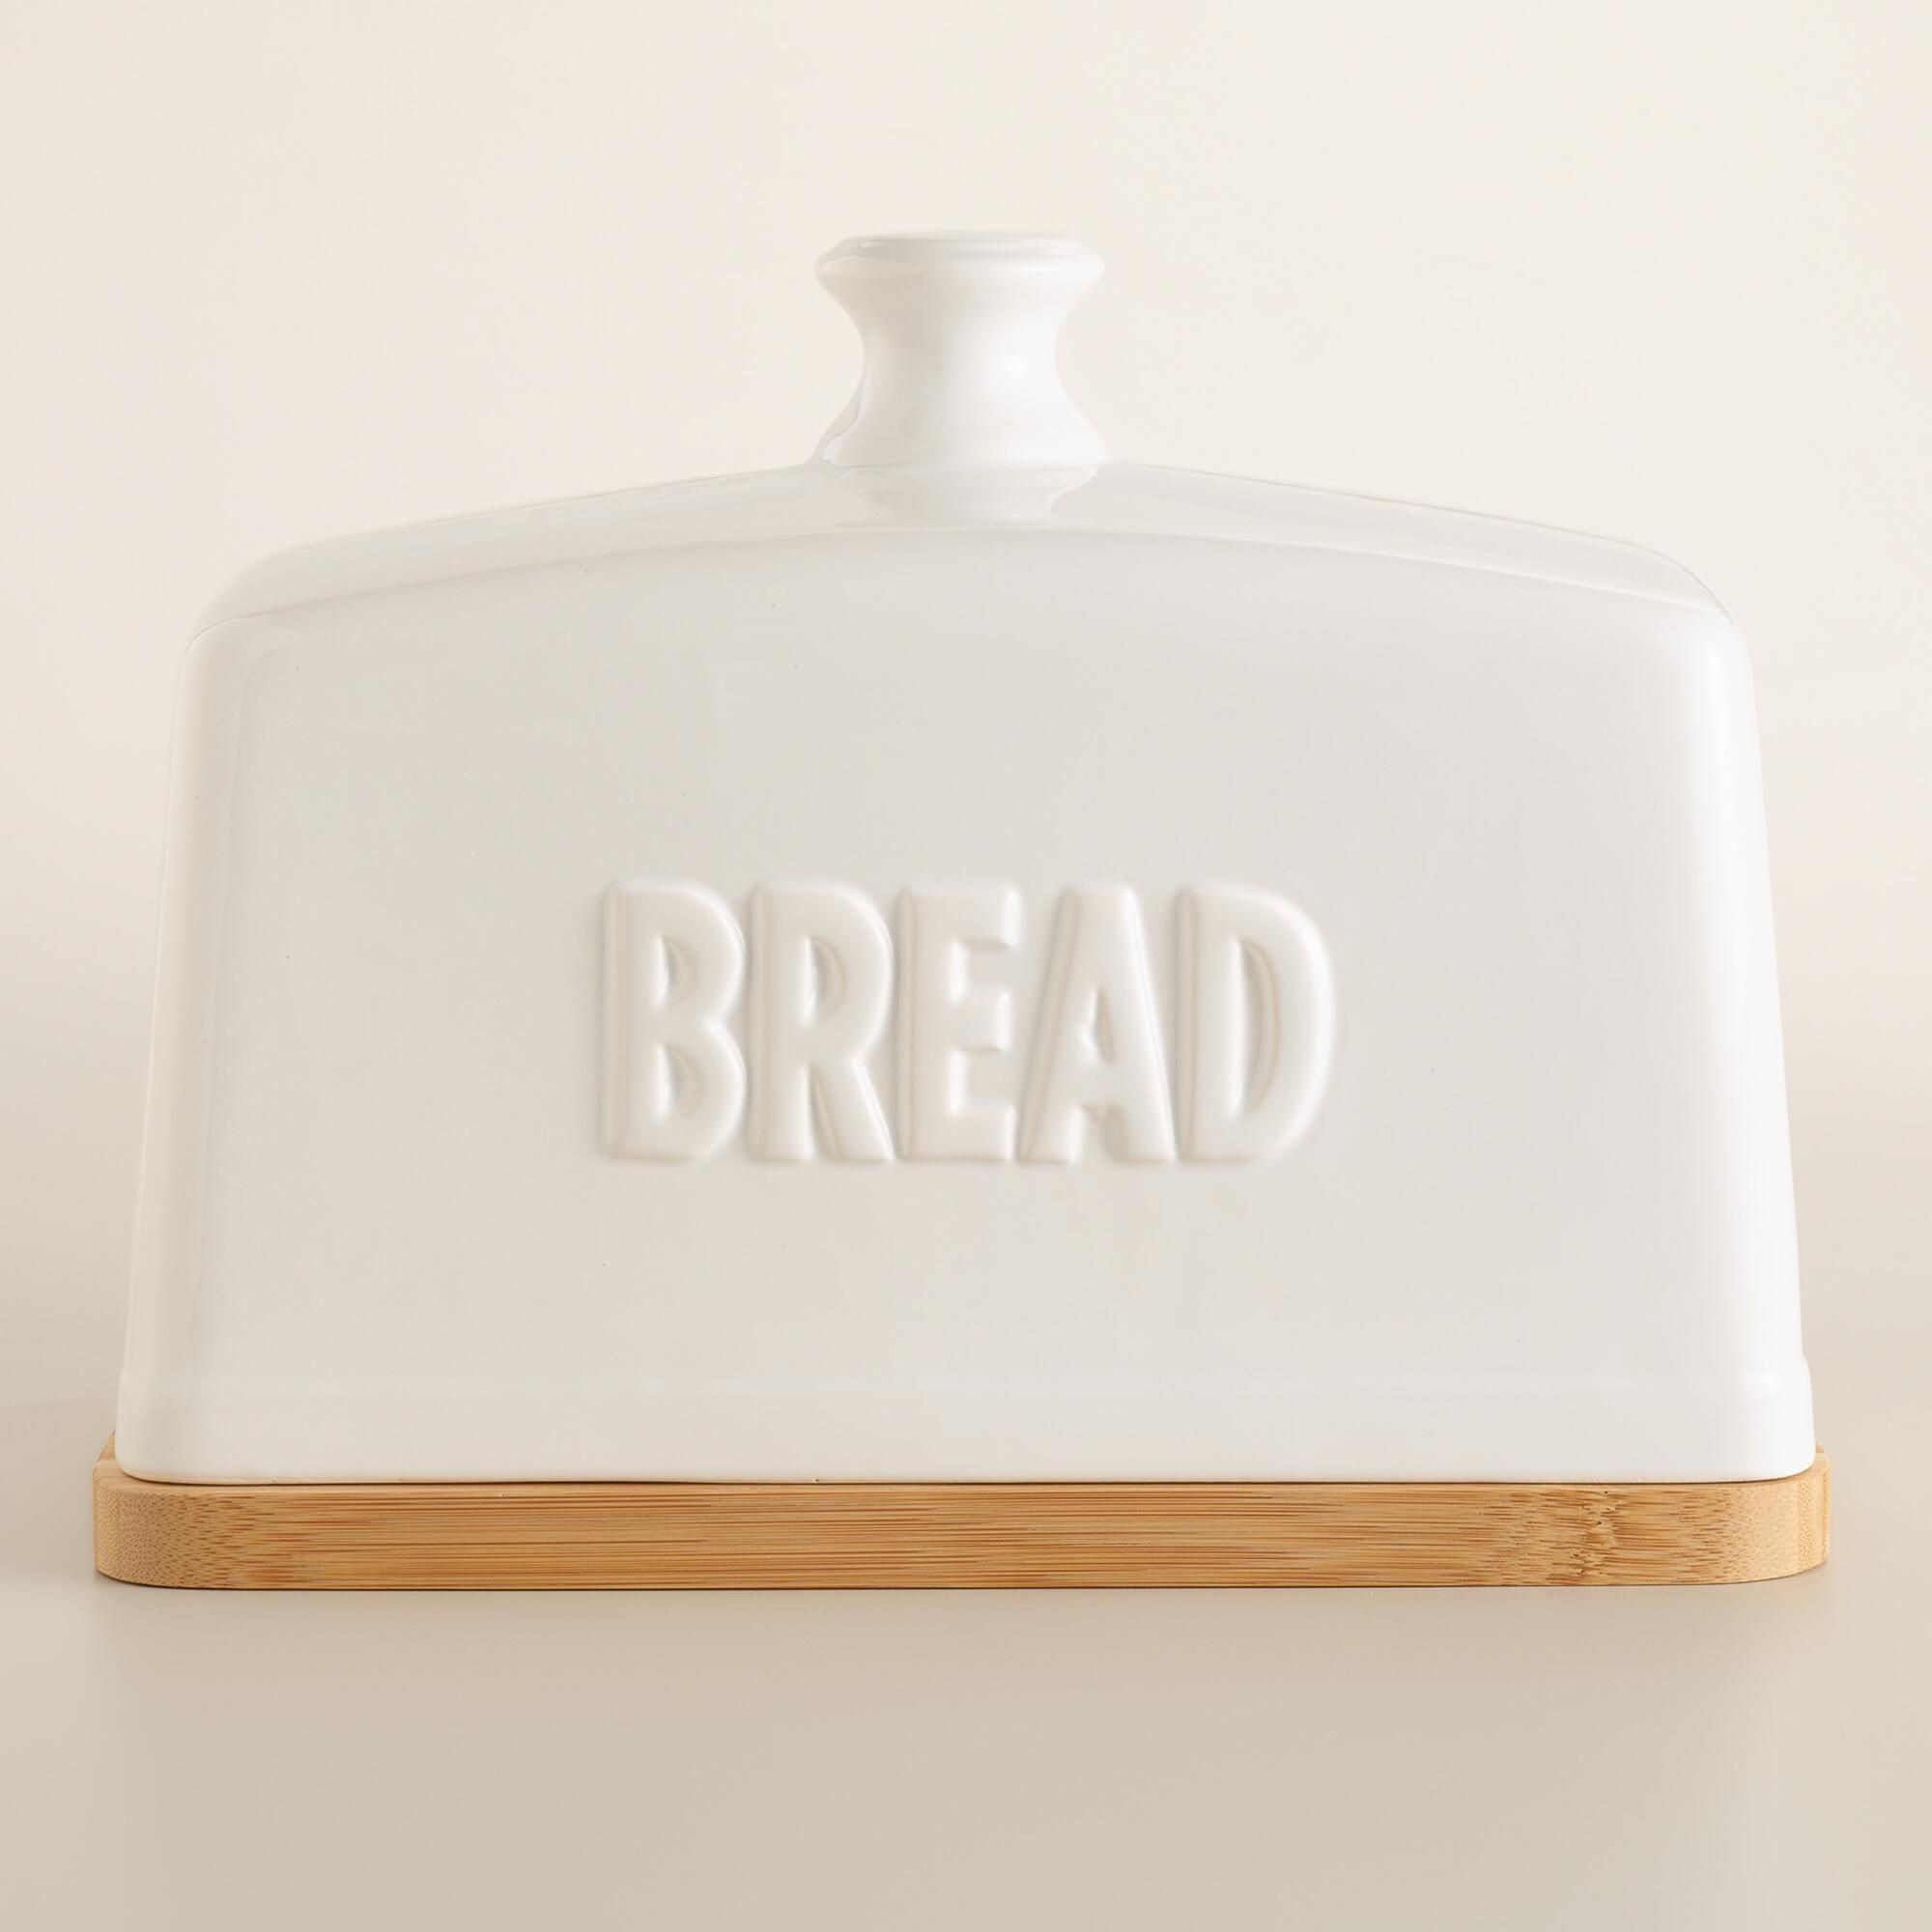 Cream Ceramic Bread Bin Vintage Home Stylish Bread Storage Bin